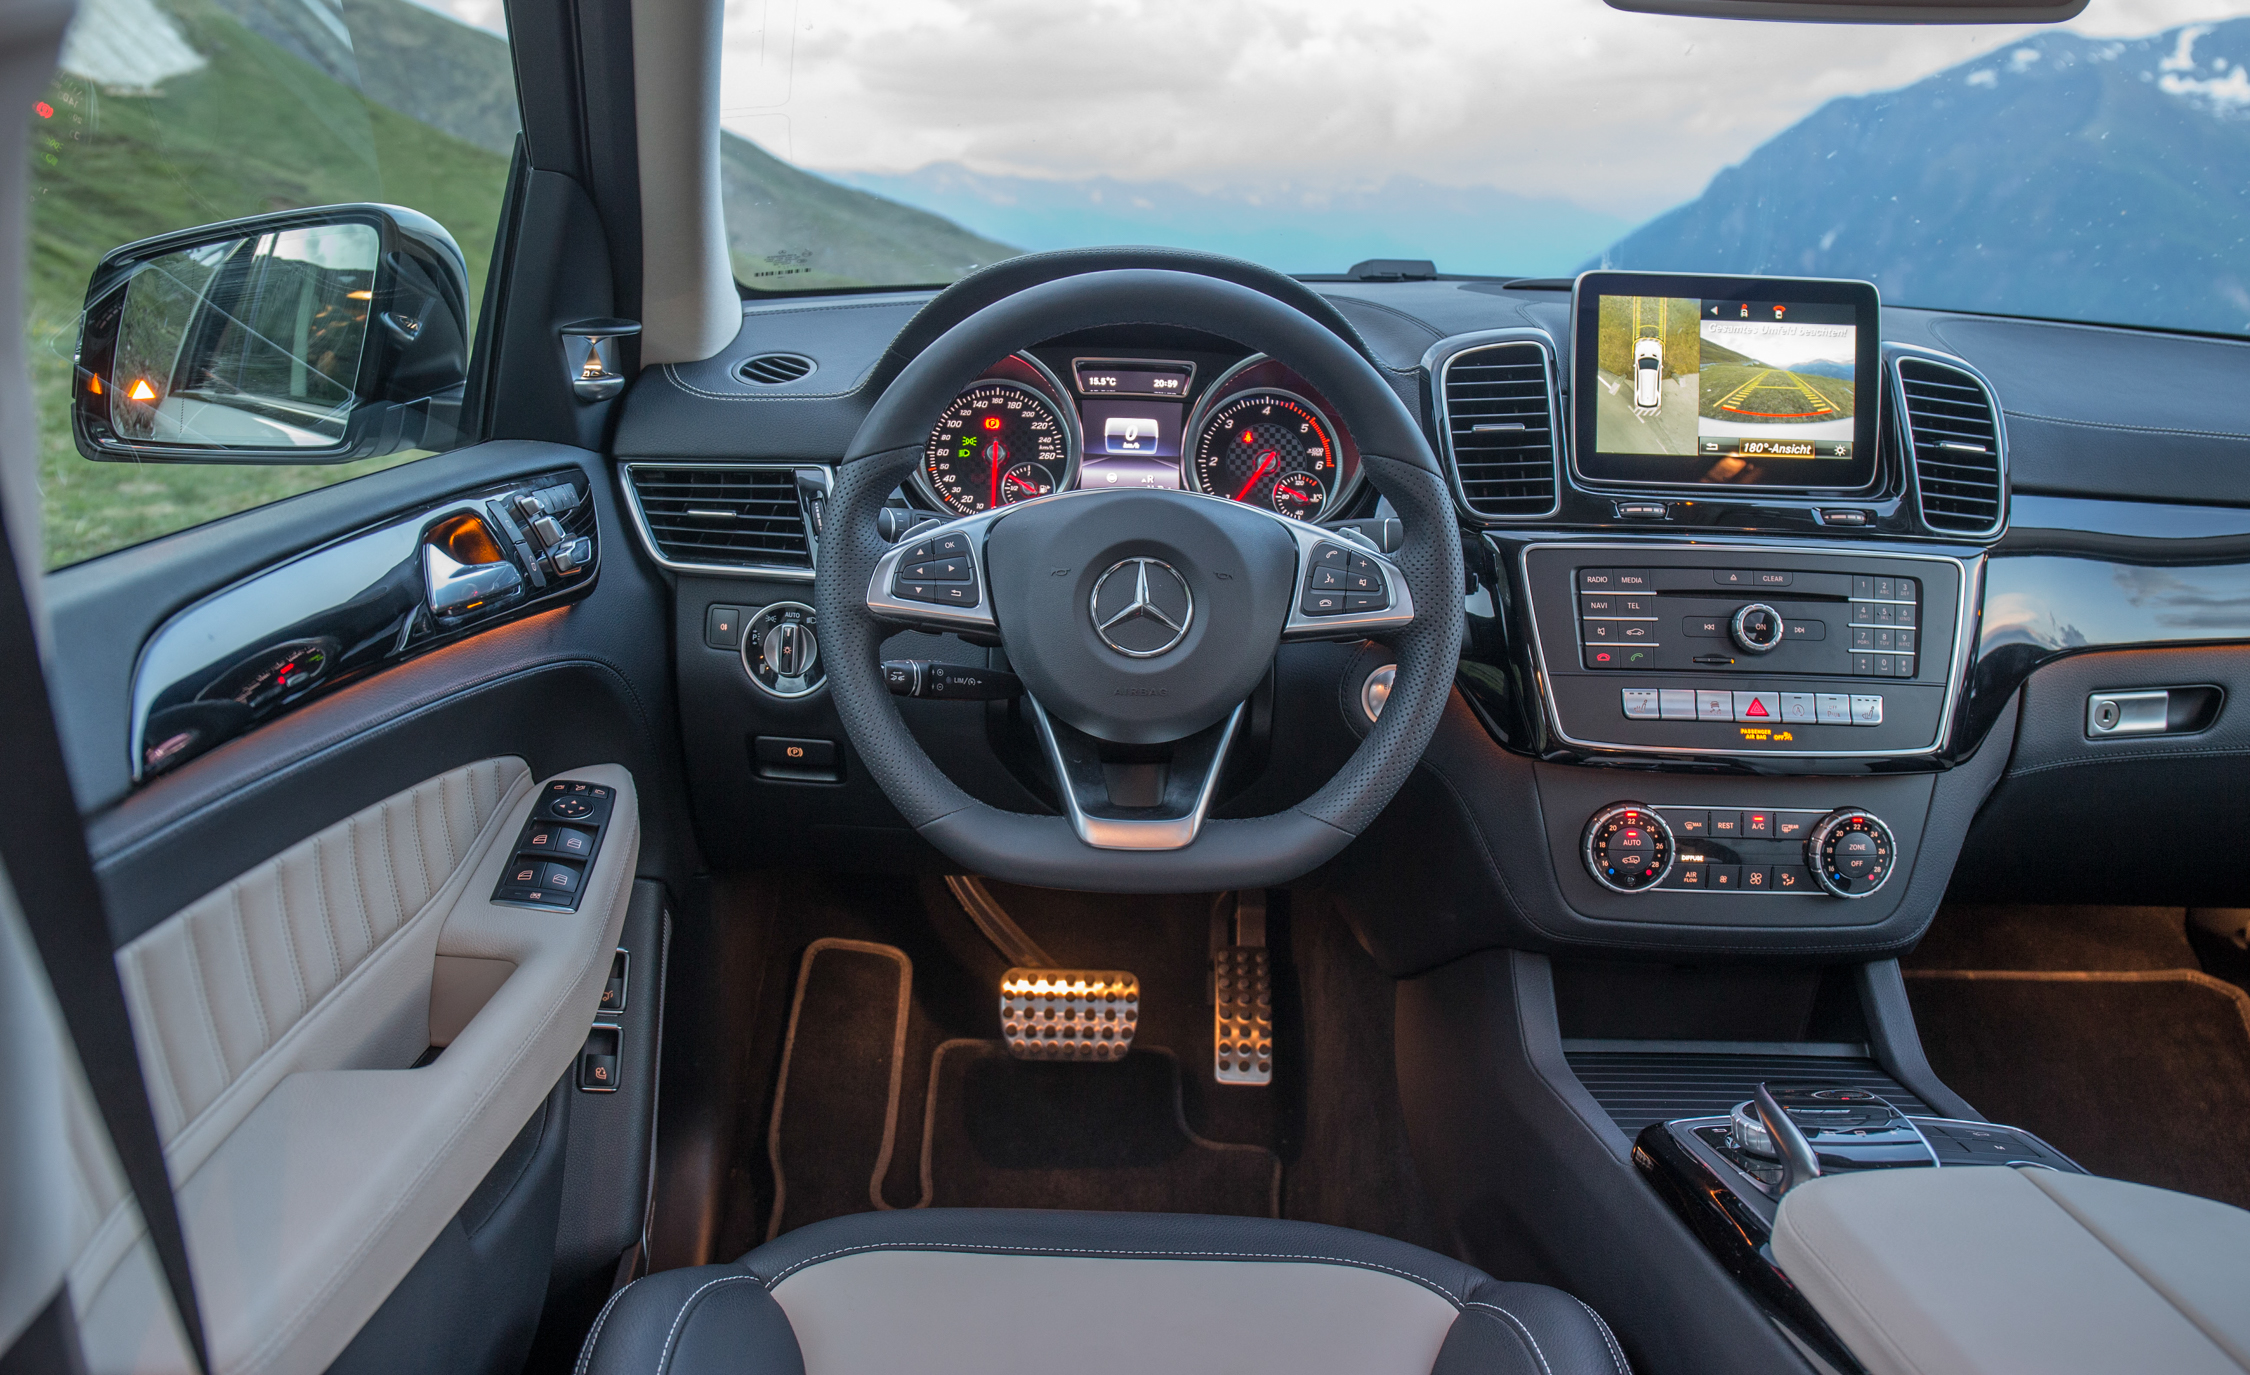 2016 mercedes benz gle400 4matic interior cockpit 7567 for 2016 mercedes benz gle400 4matic